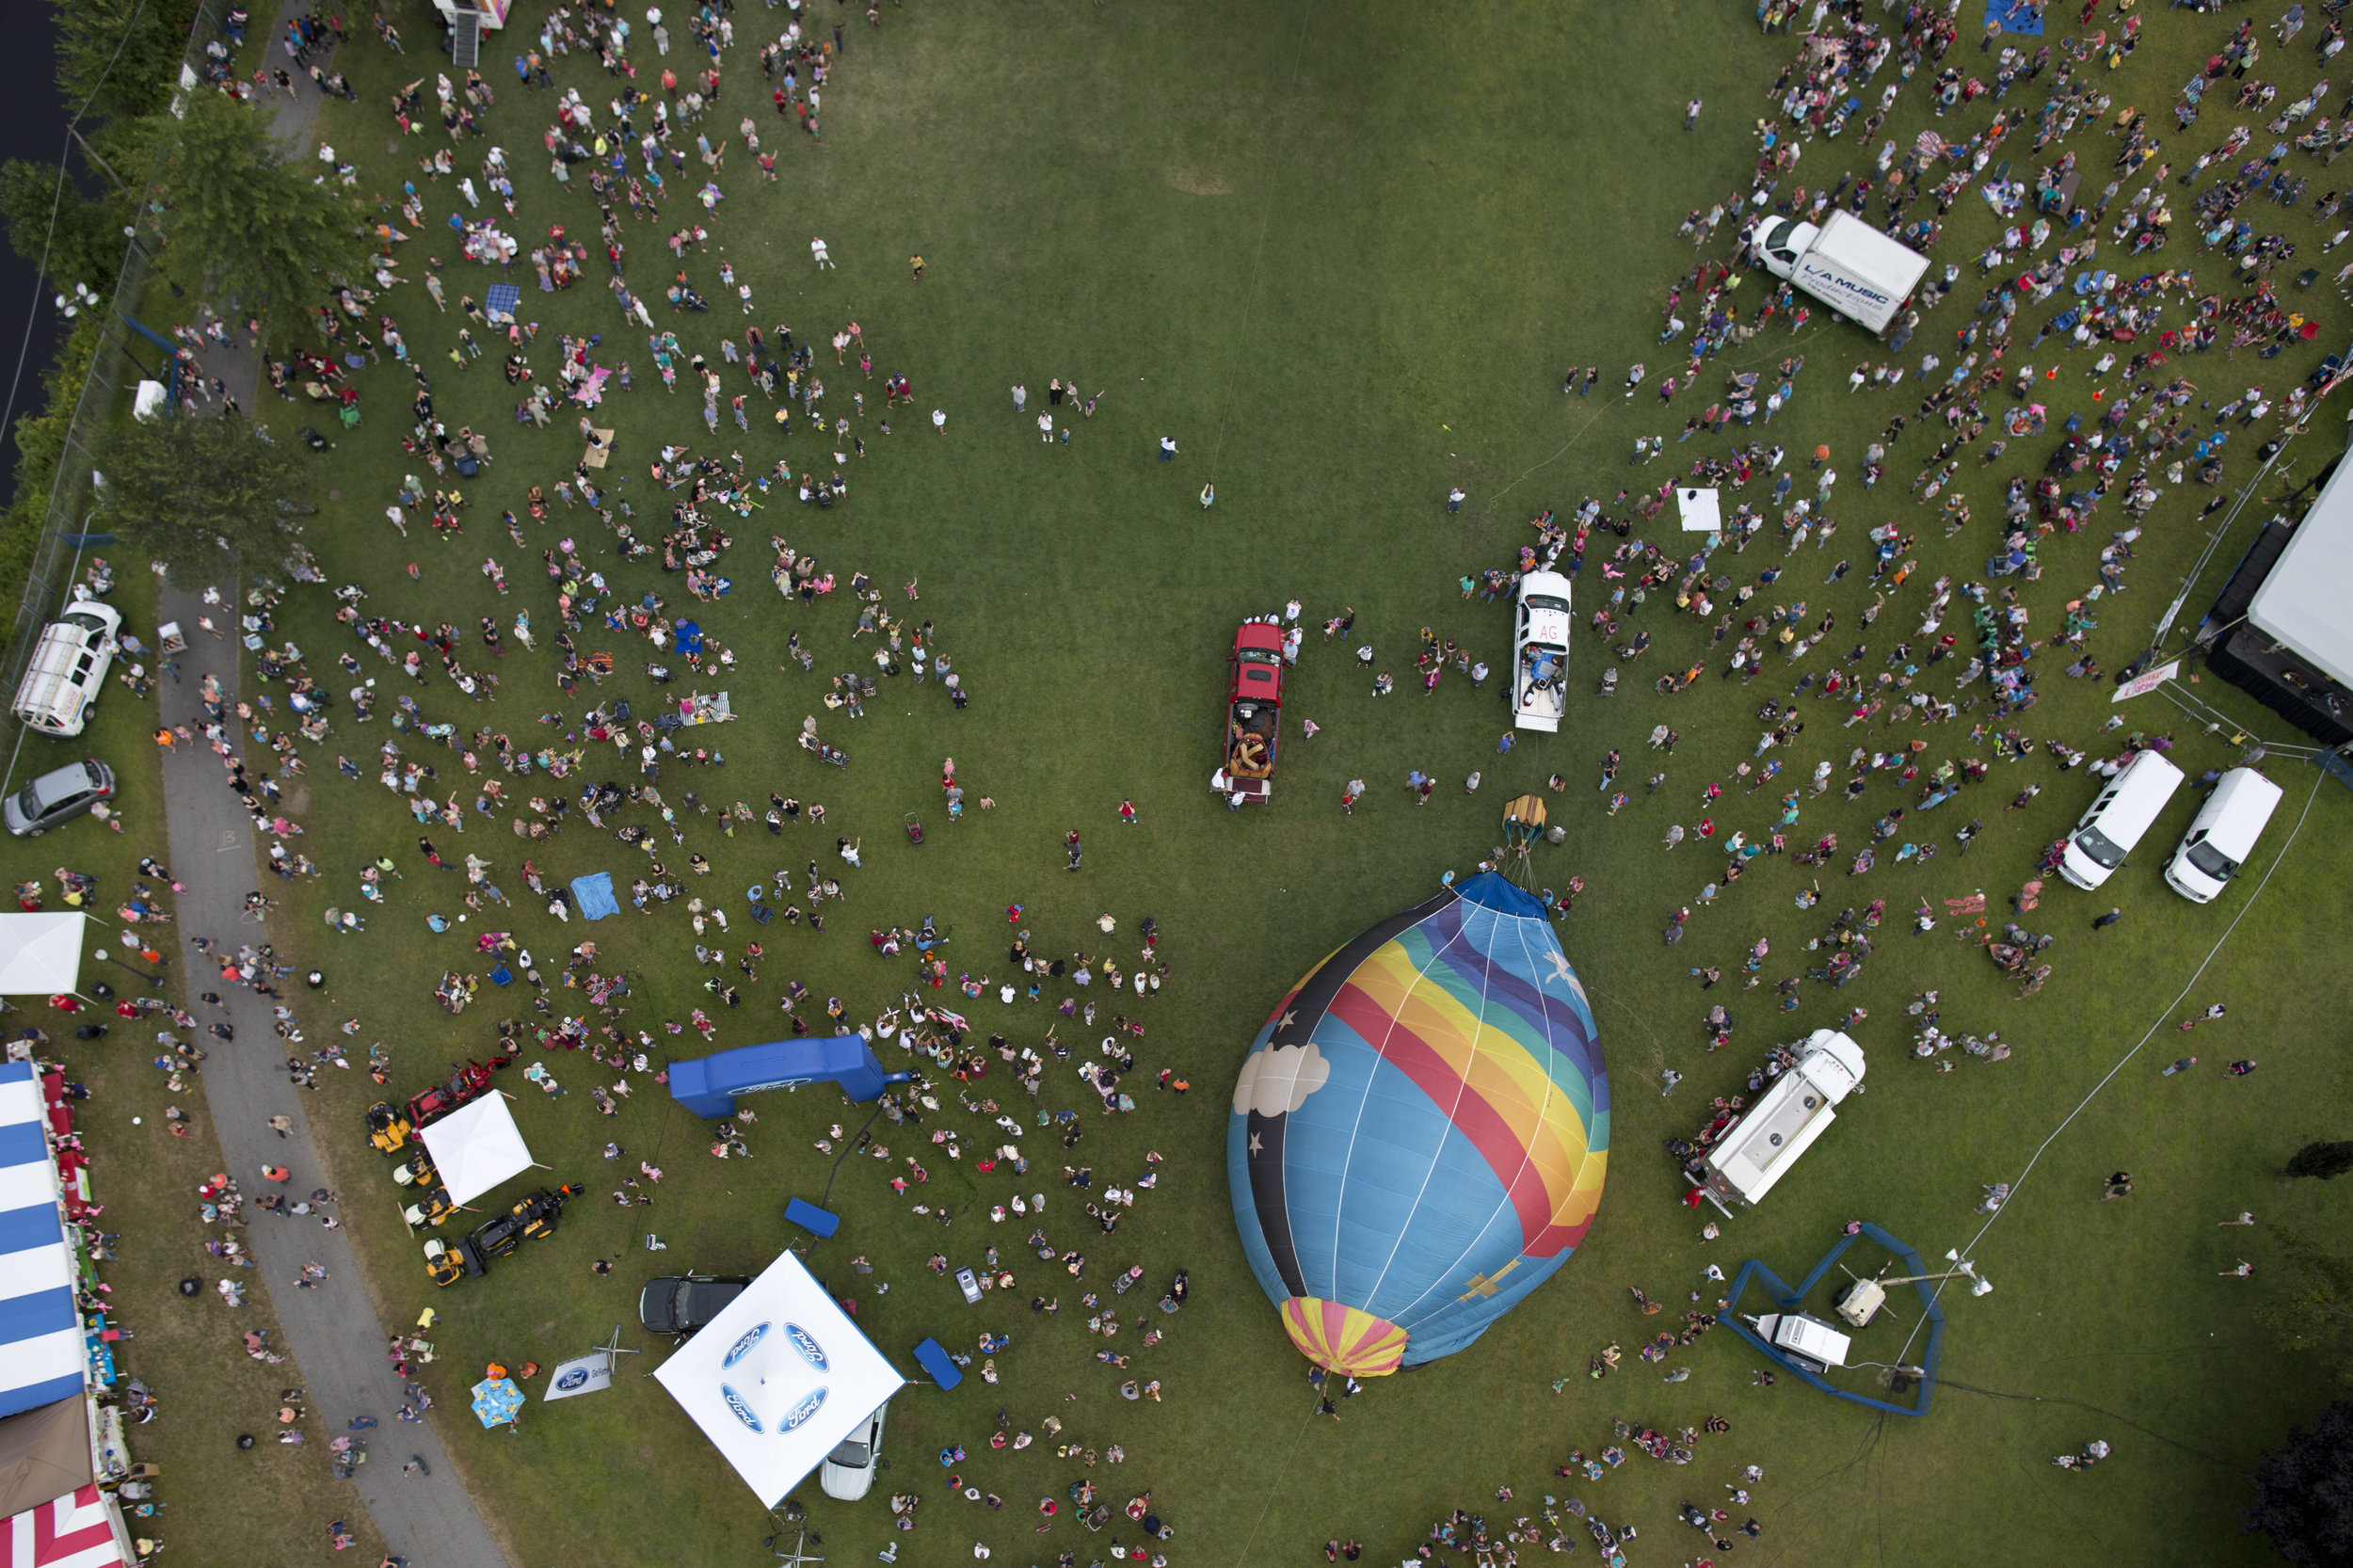 Hot air balloons fly above Lewiston and Auburn, Maine during the Great Falls Balloon Festival on August 18, 2013.